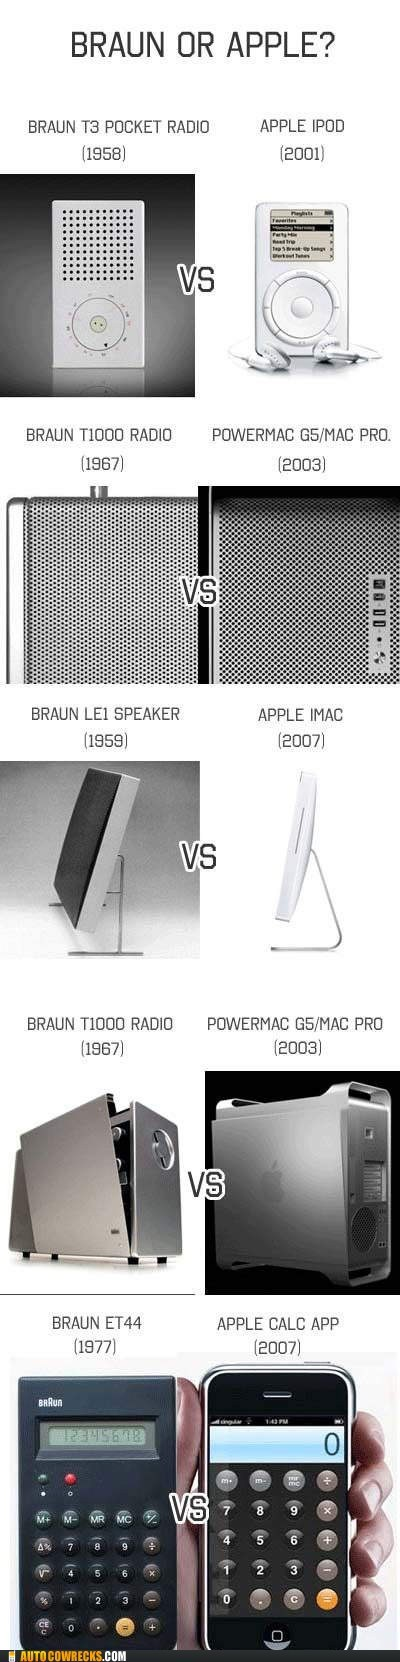 apple,braun,compared,products,similar